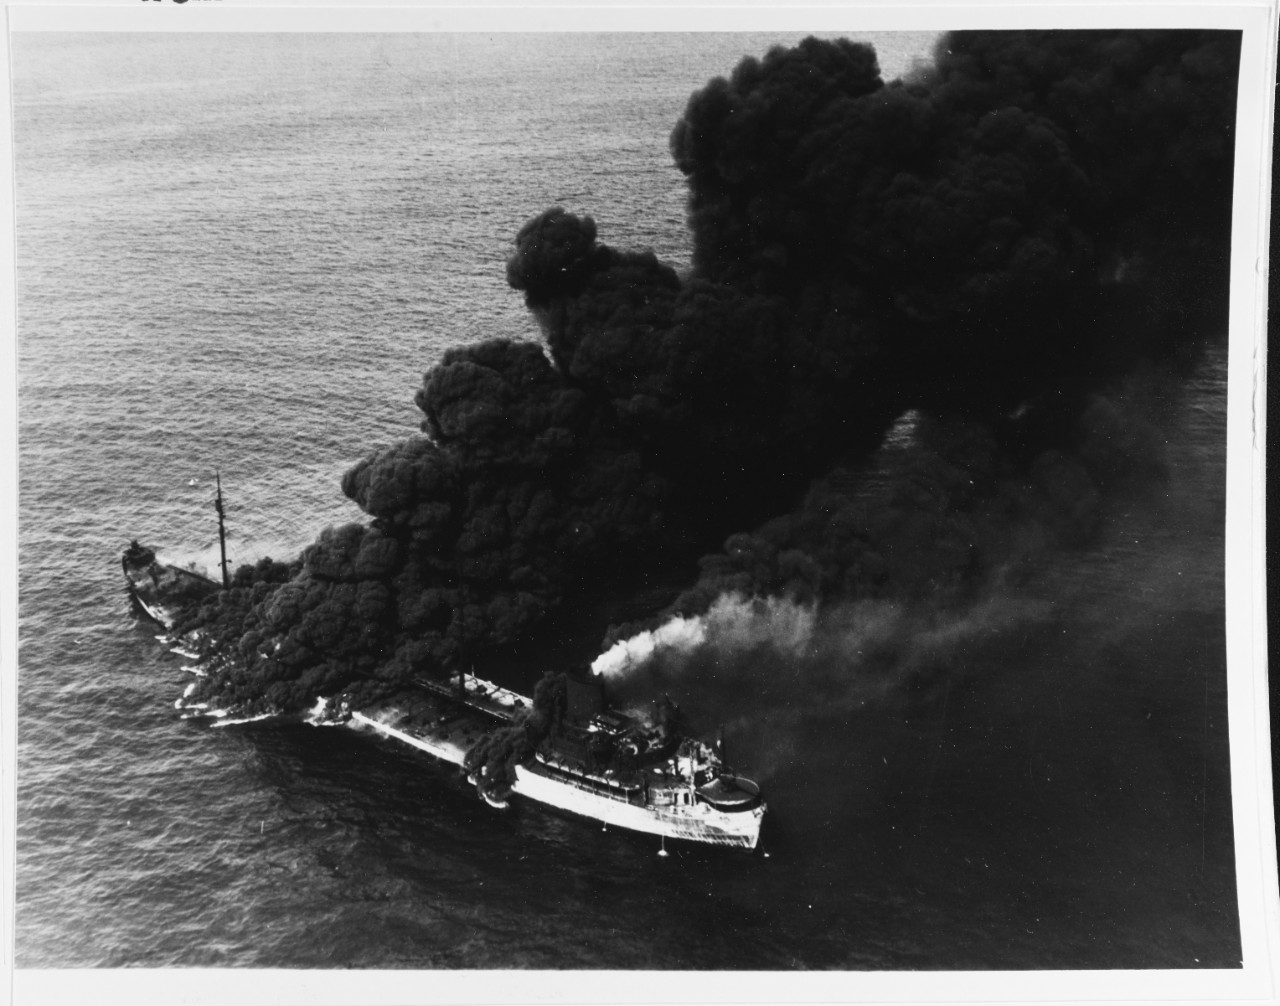 SS Pennsylvania Sun burning after being torpedoed by U-571, July 1942. Naval History & Heritage Command photograph #80-G-61599.